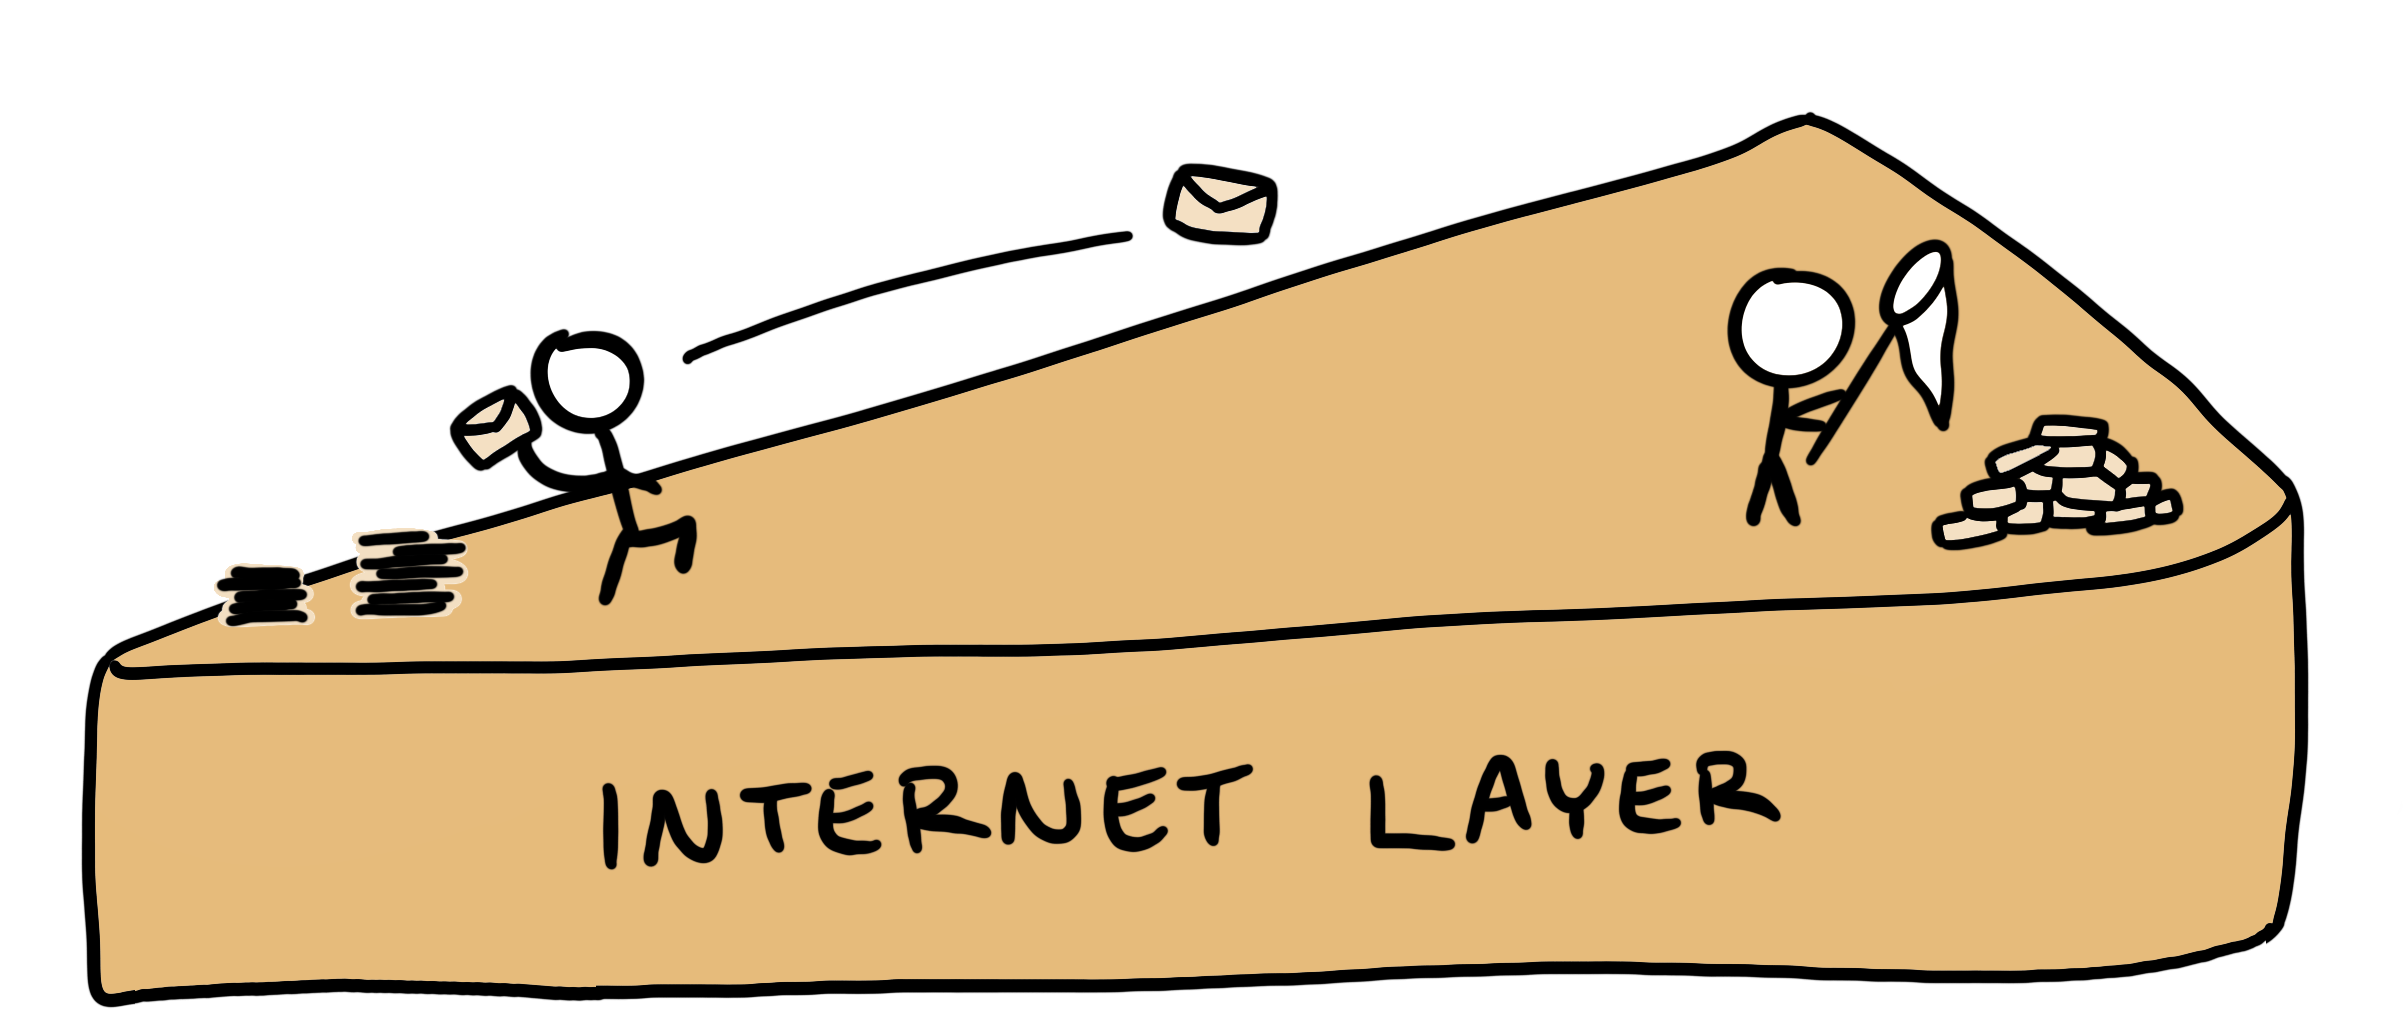 Internet cake layer cartoon